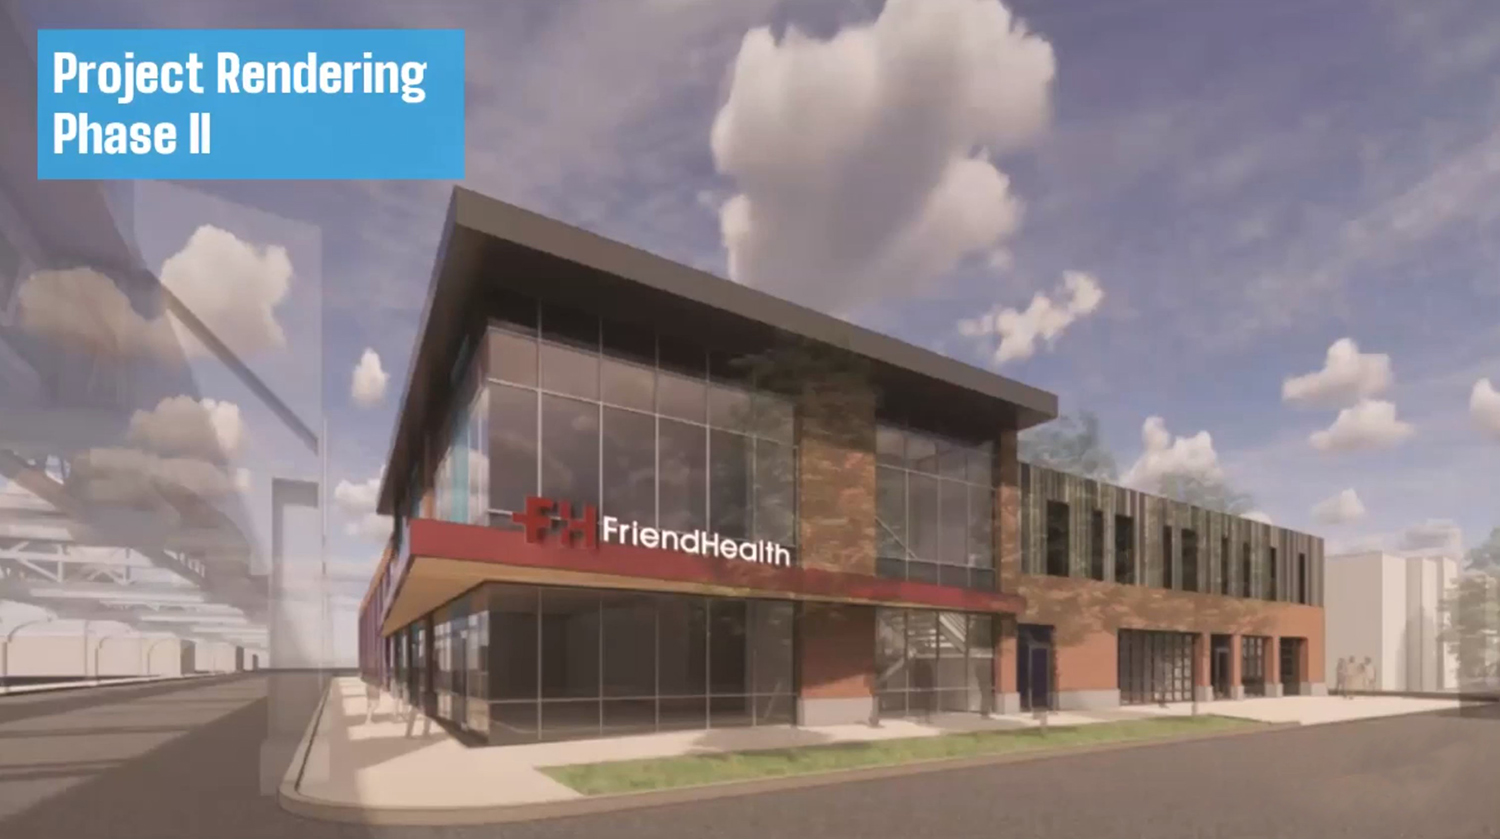 Annex Building at Friend Health Medical Center. Rendering by Friend Health and DL3 Realty